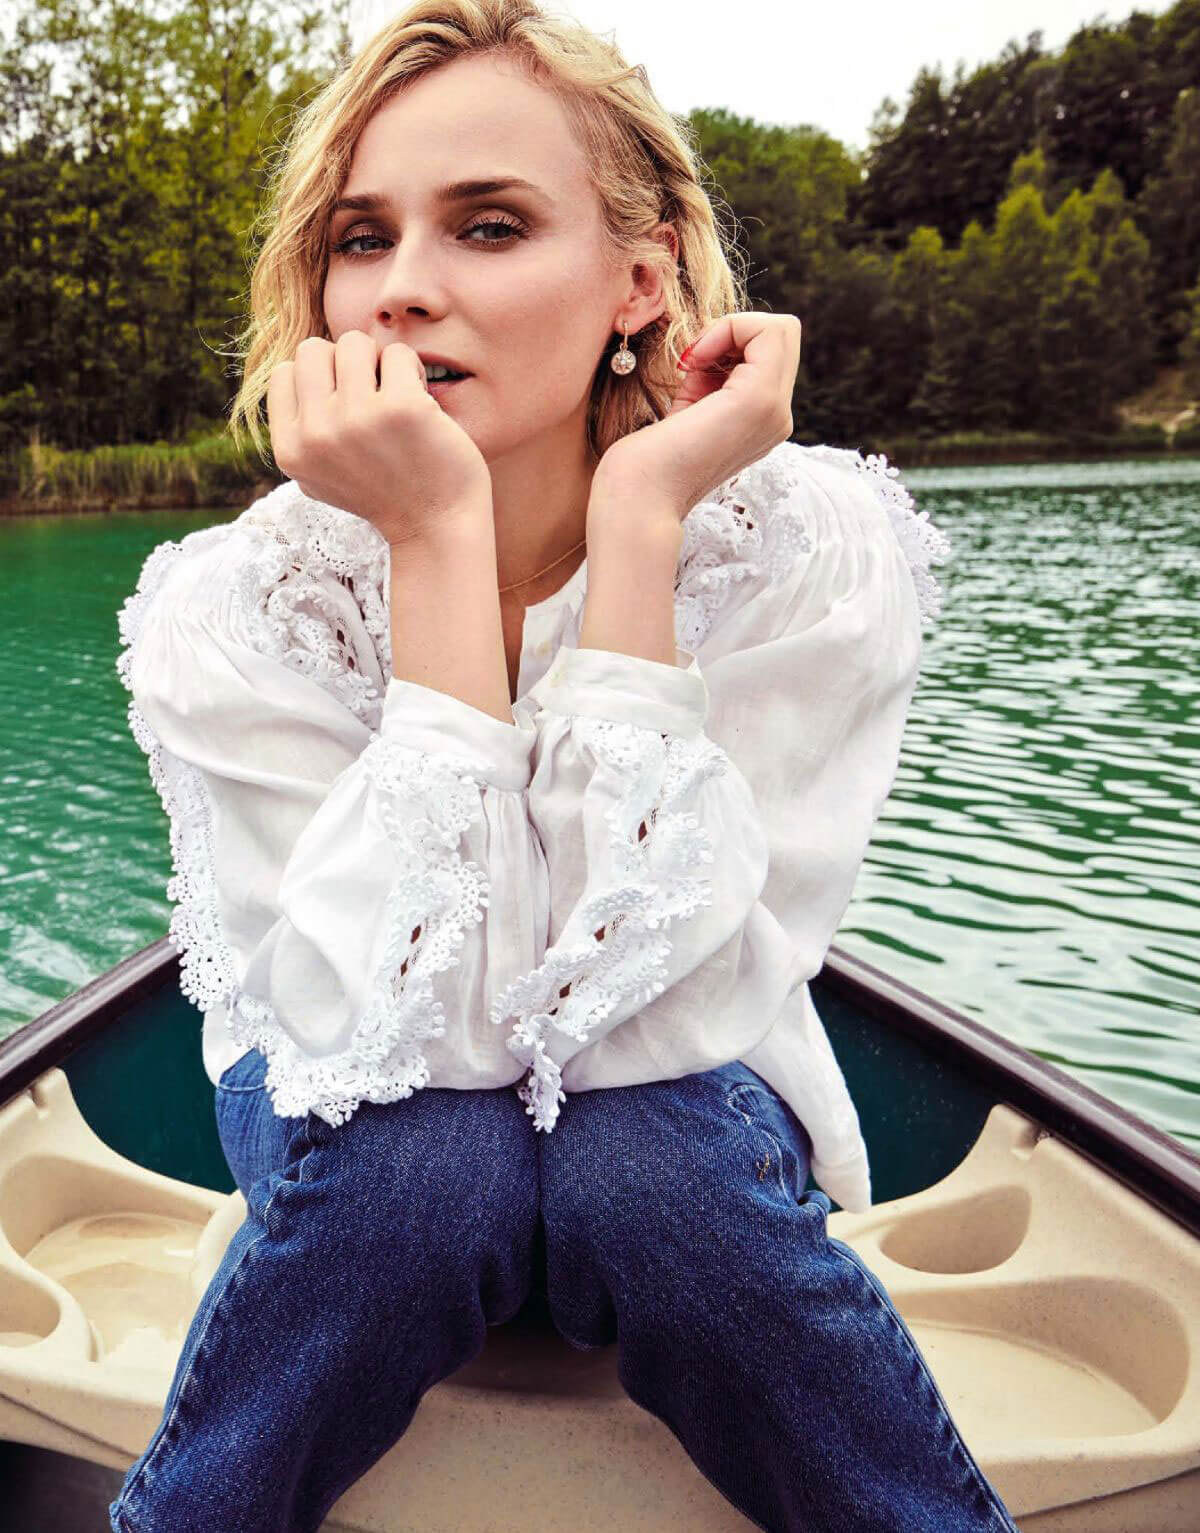 Diane Kruger in Natural Style Magazine, April 2018 Issue 1